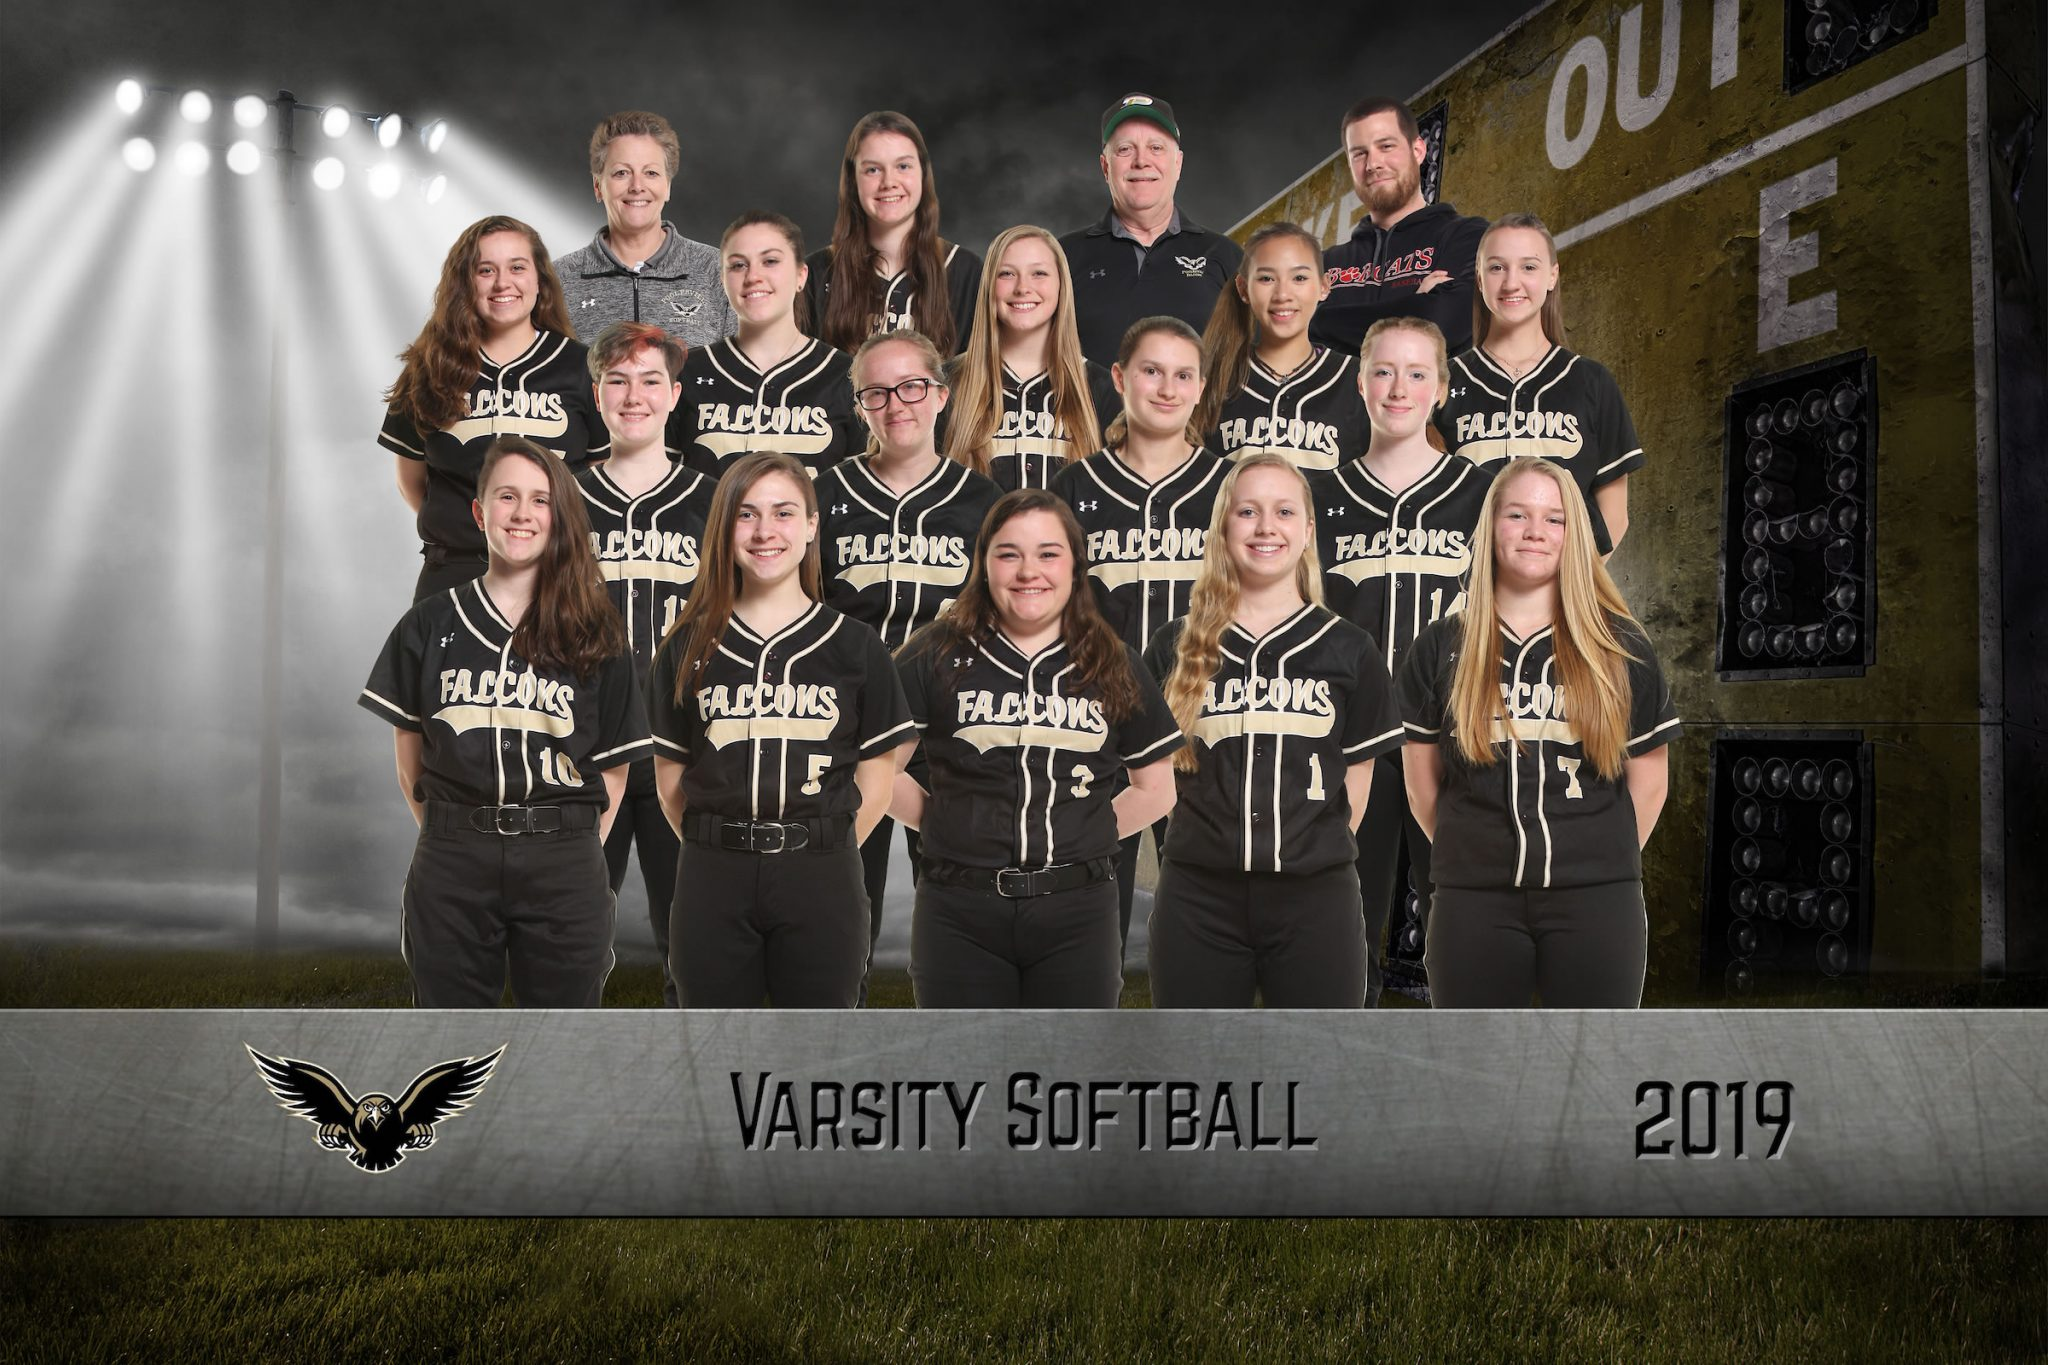 varsity softball team picture 2019